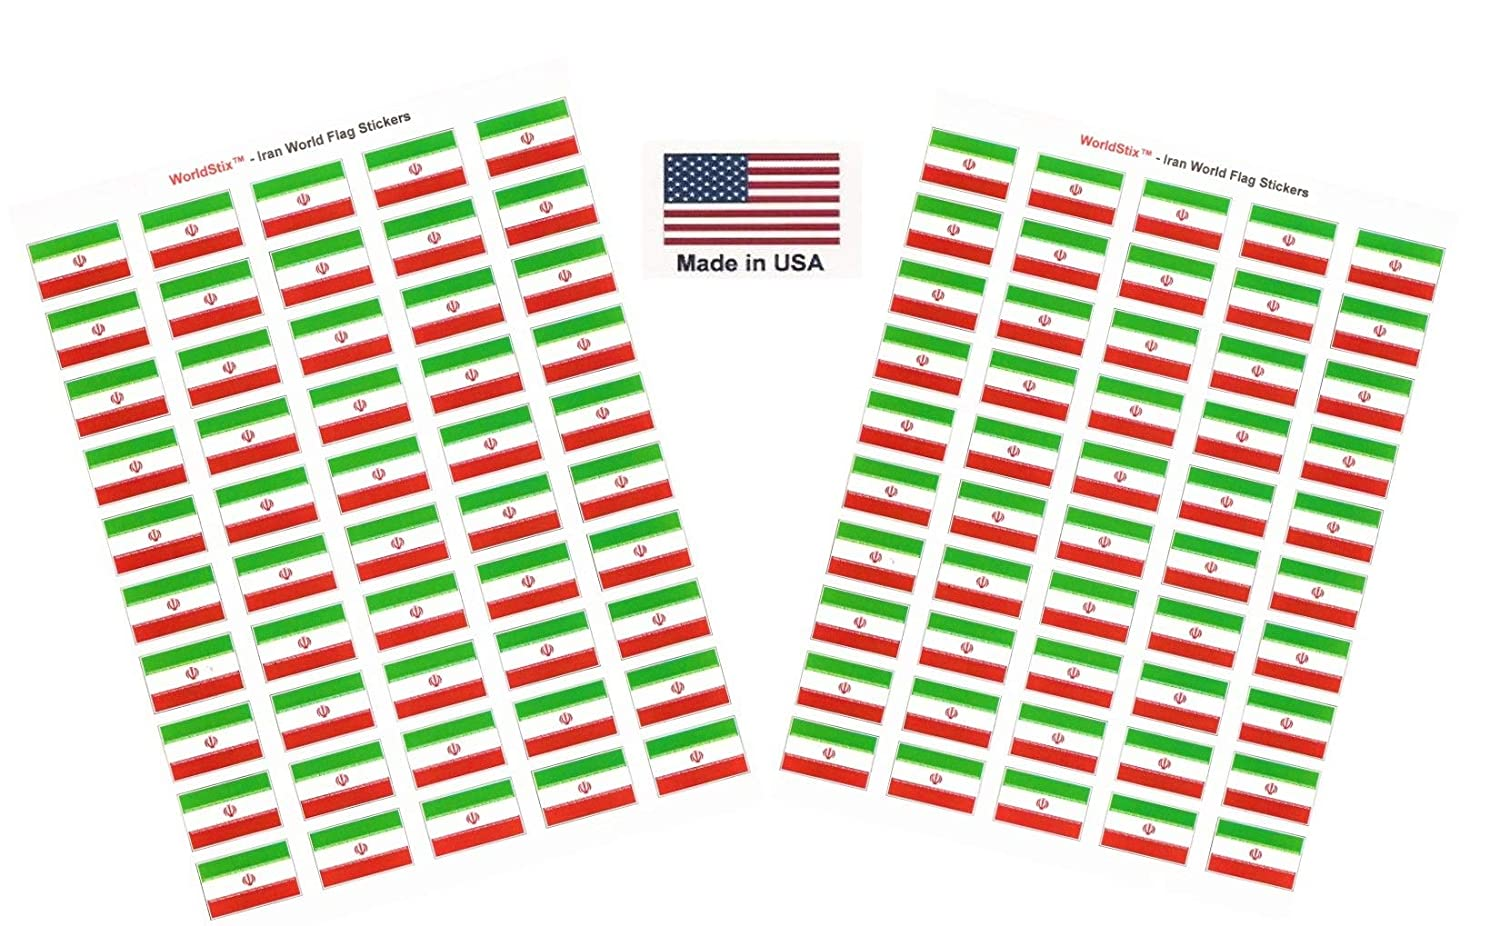 100 International Sticker Decal Flags Total 100 Country Flag 1.5 x 1 Self Adhesive World Flag Scrapbook Stickers Two Sheets of 50 Italy Made in USA